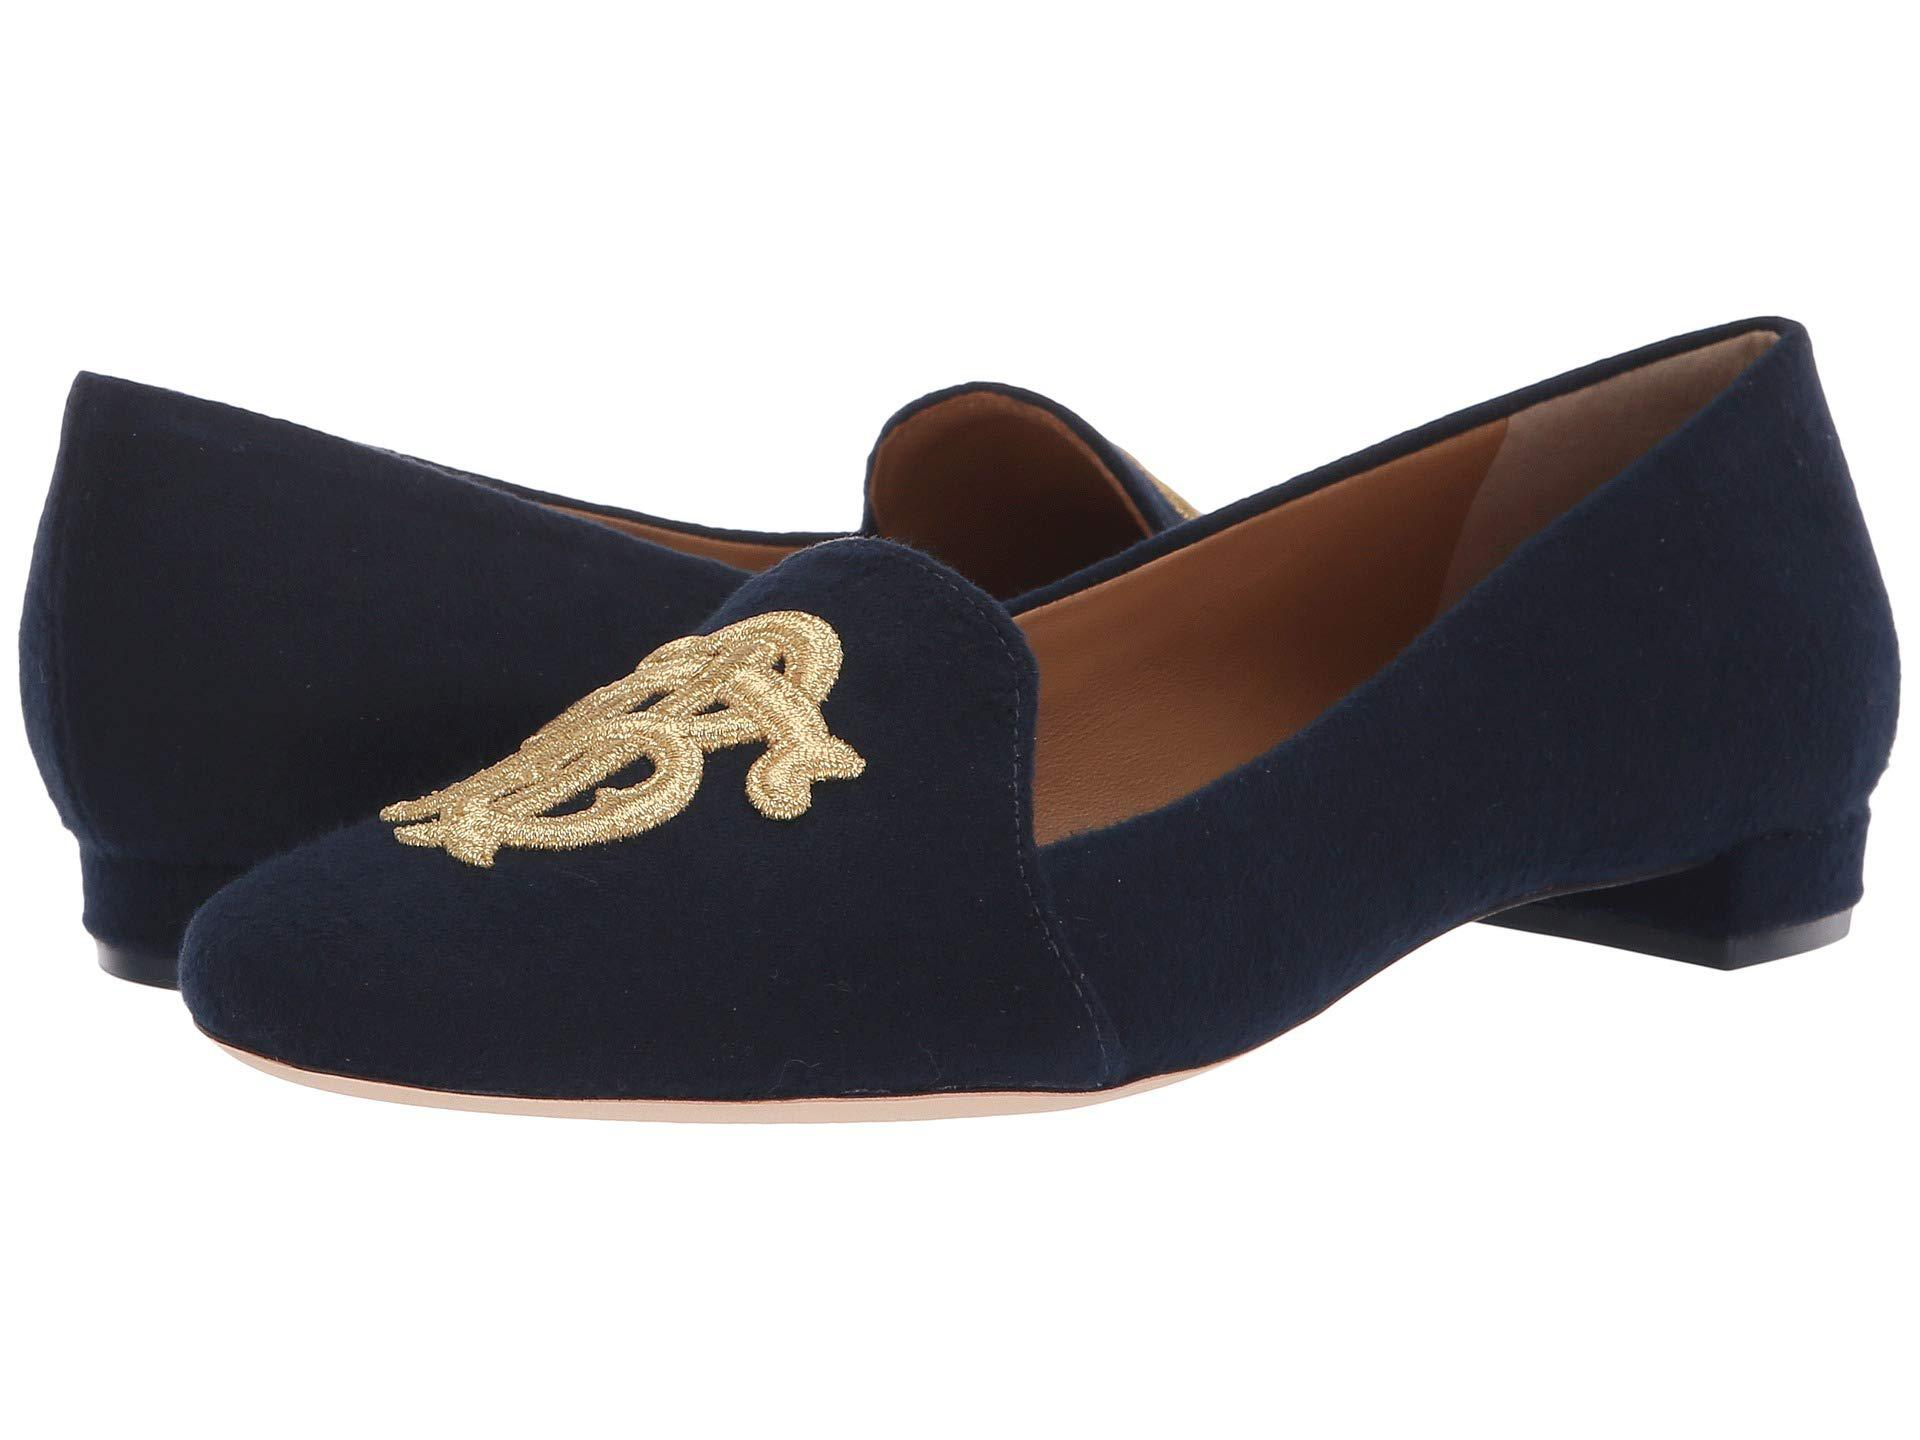 89d8fdd5a766 Lyst - Tory Burch Antonia Loafer in Blue - Save 51%